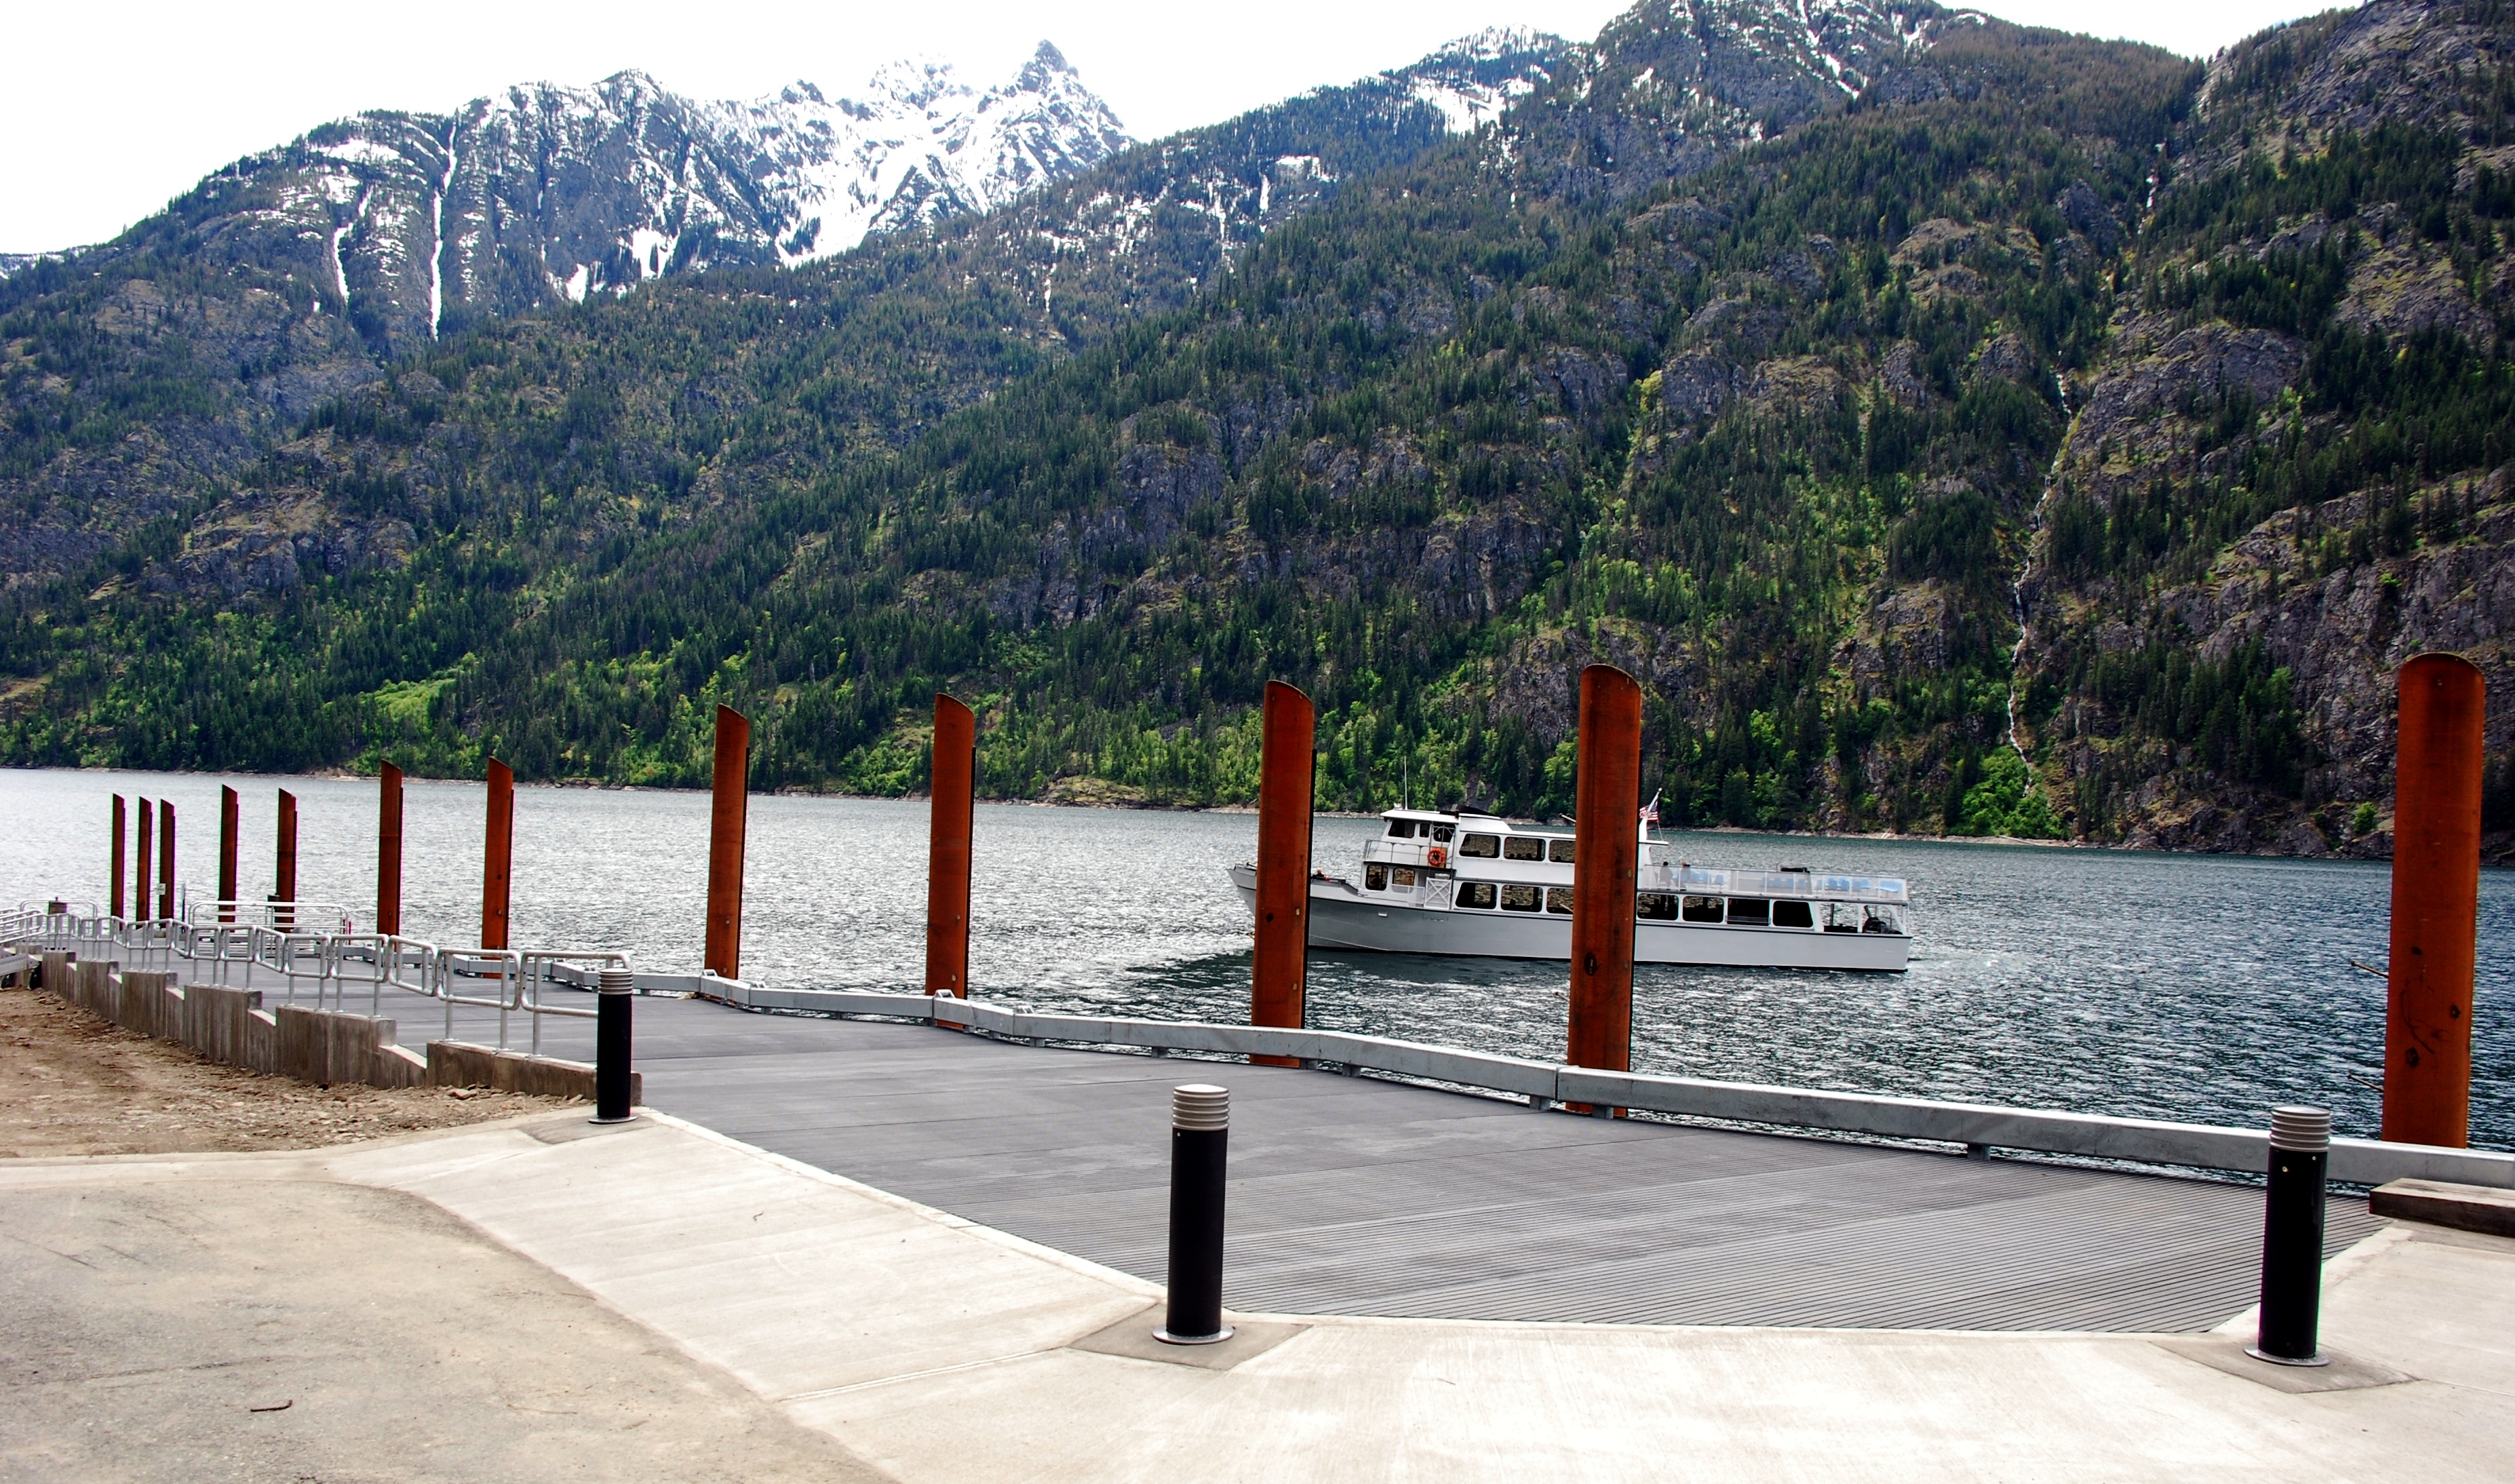 StructDesign - North Cascades National Park - Stehekin Dock